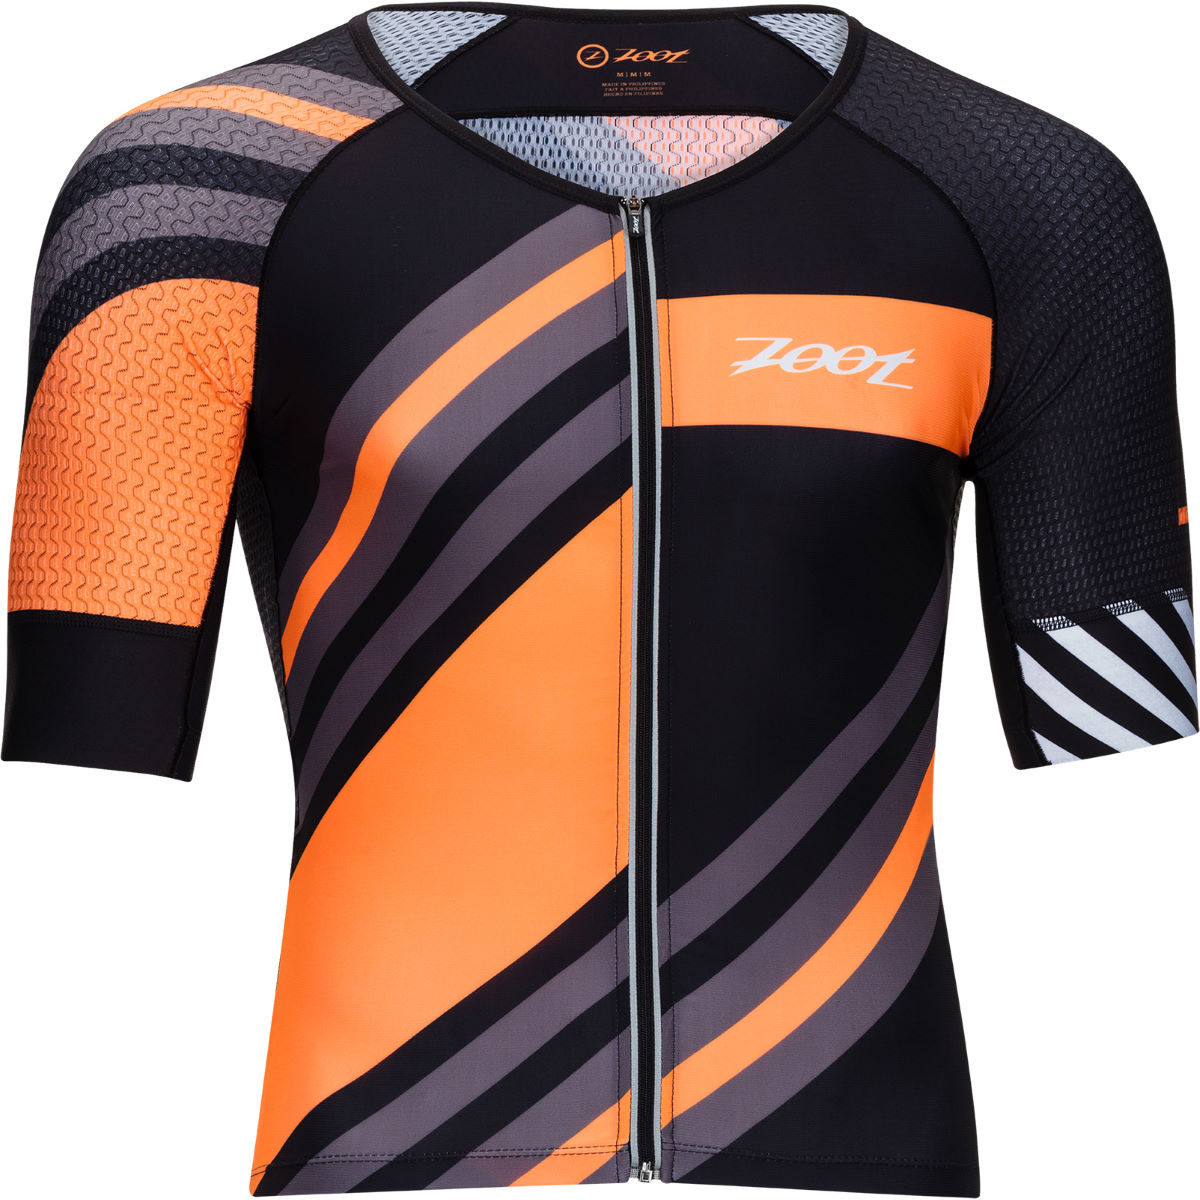 Zoot Ultra Tri Aero Short Sleeve Top Tri Tops Review